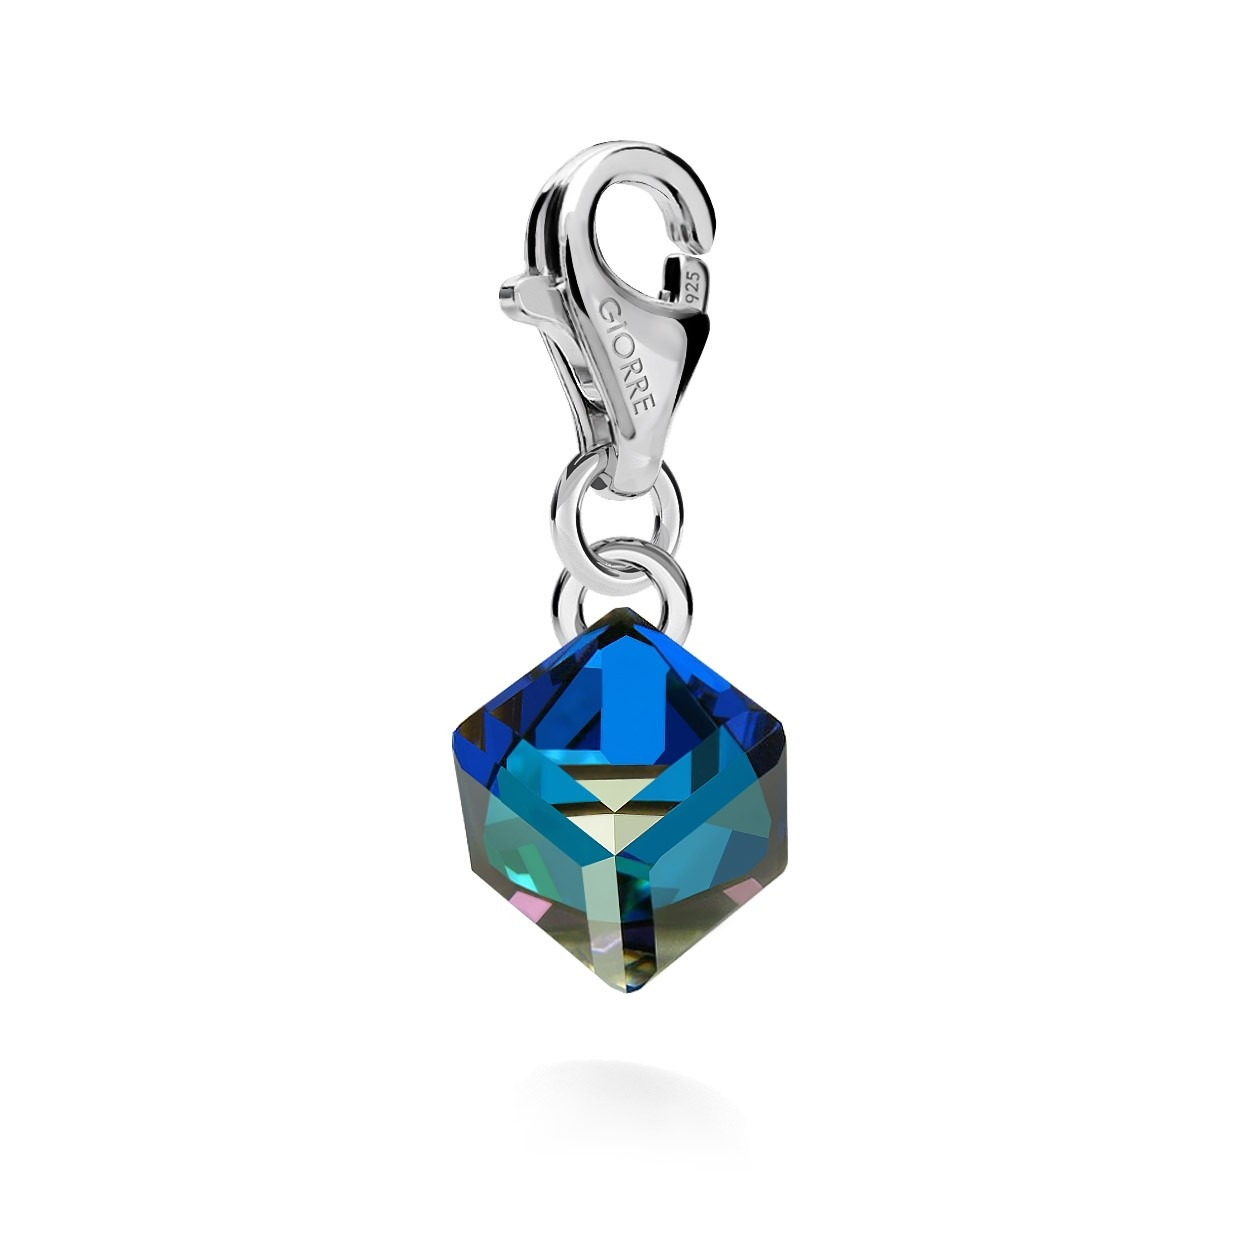 CHARM 99, CUBE, SWAROVSKI 4841 MM 6, STERLING SILVER (925) RHODIUM OR GOLD PLATED